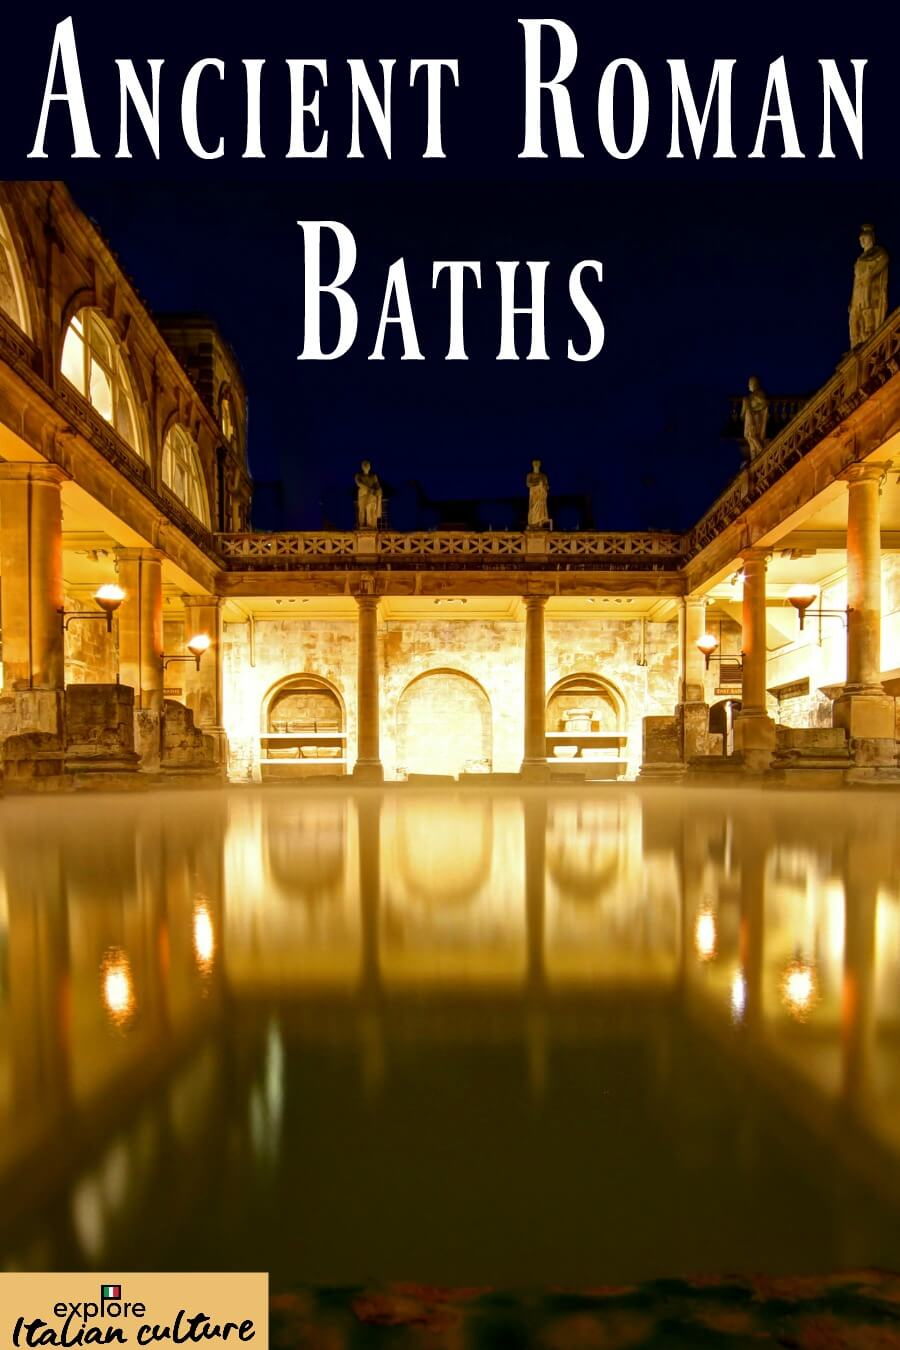 Ancient Roman bathhouses